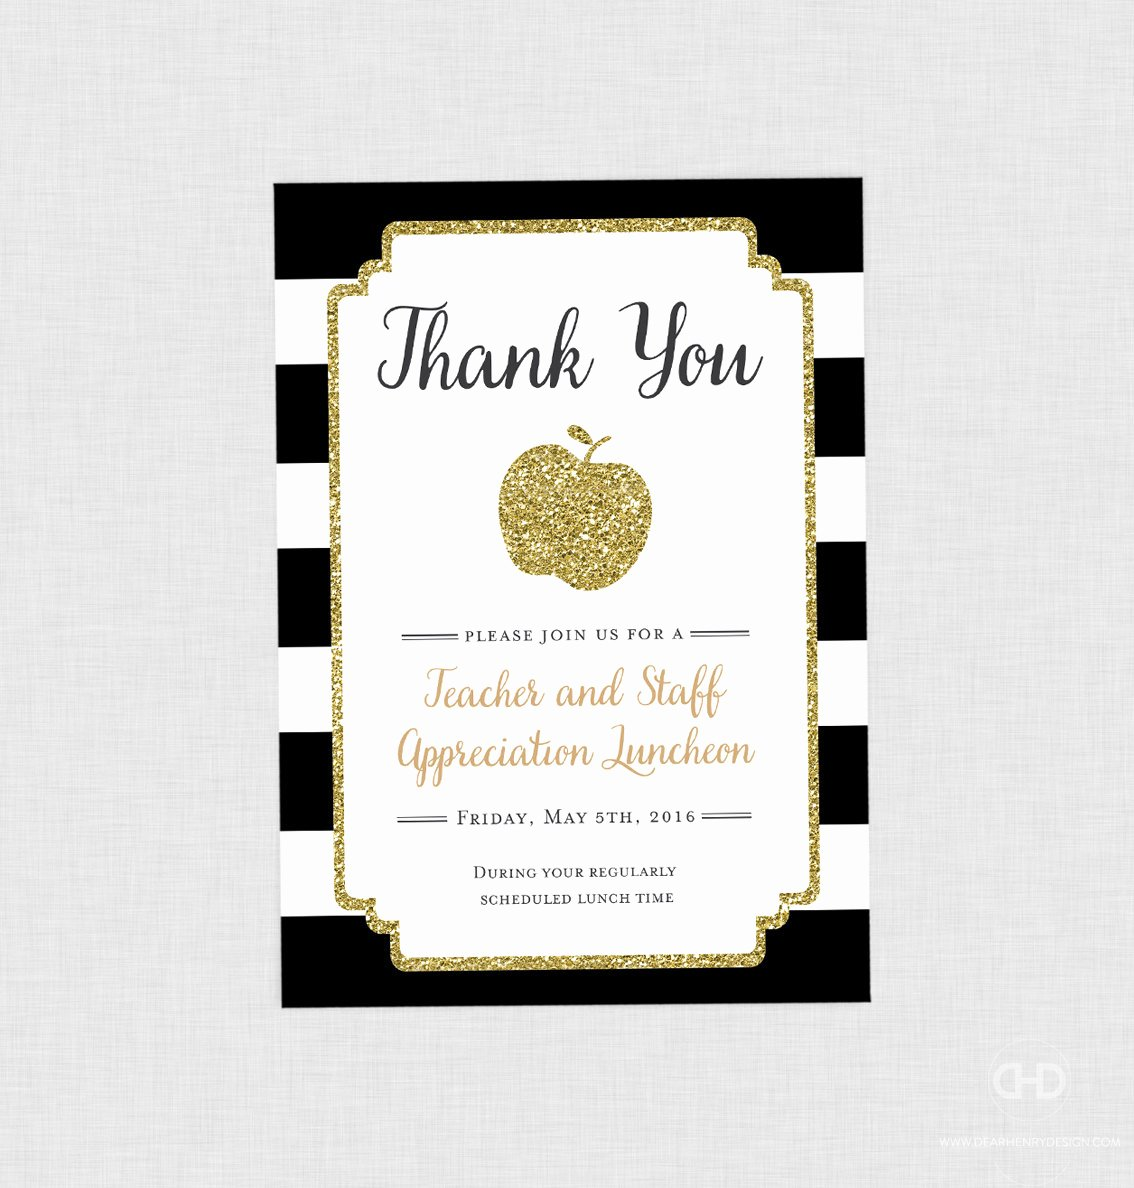 Thank You Lunch Invitation Elegant Teacher Appreciation Invitation Apple Printable Teacher